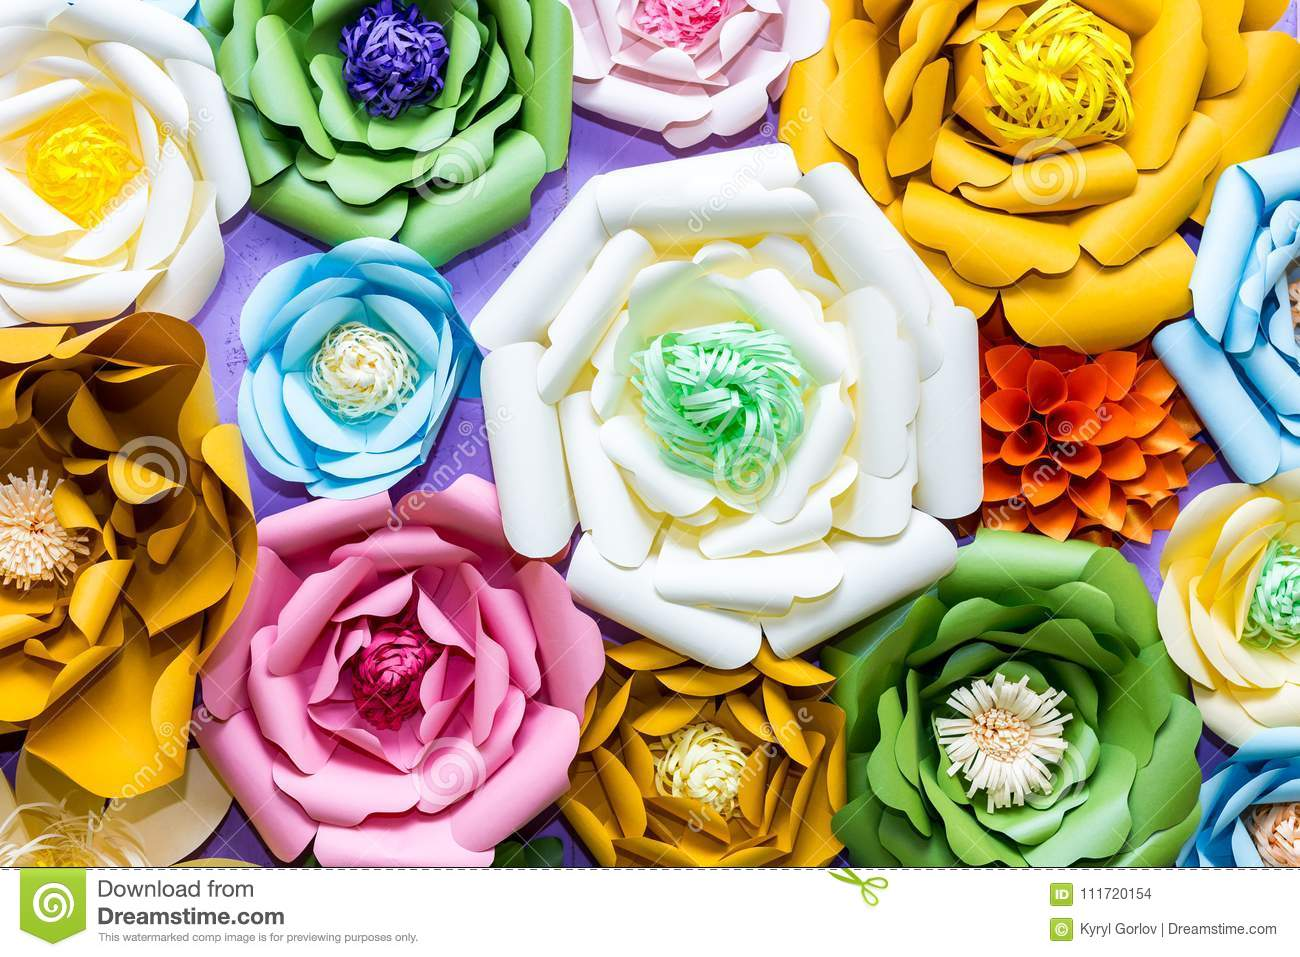 Colorful paper flowers on wall. Handmade artificial floral decoration. Spring abstract beautiful background and texture